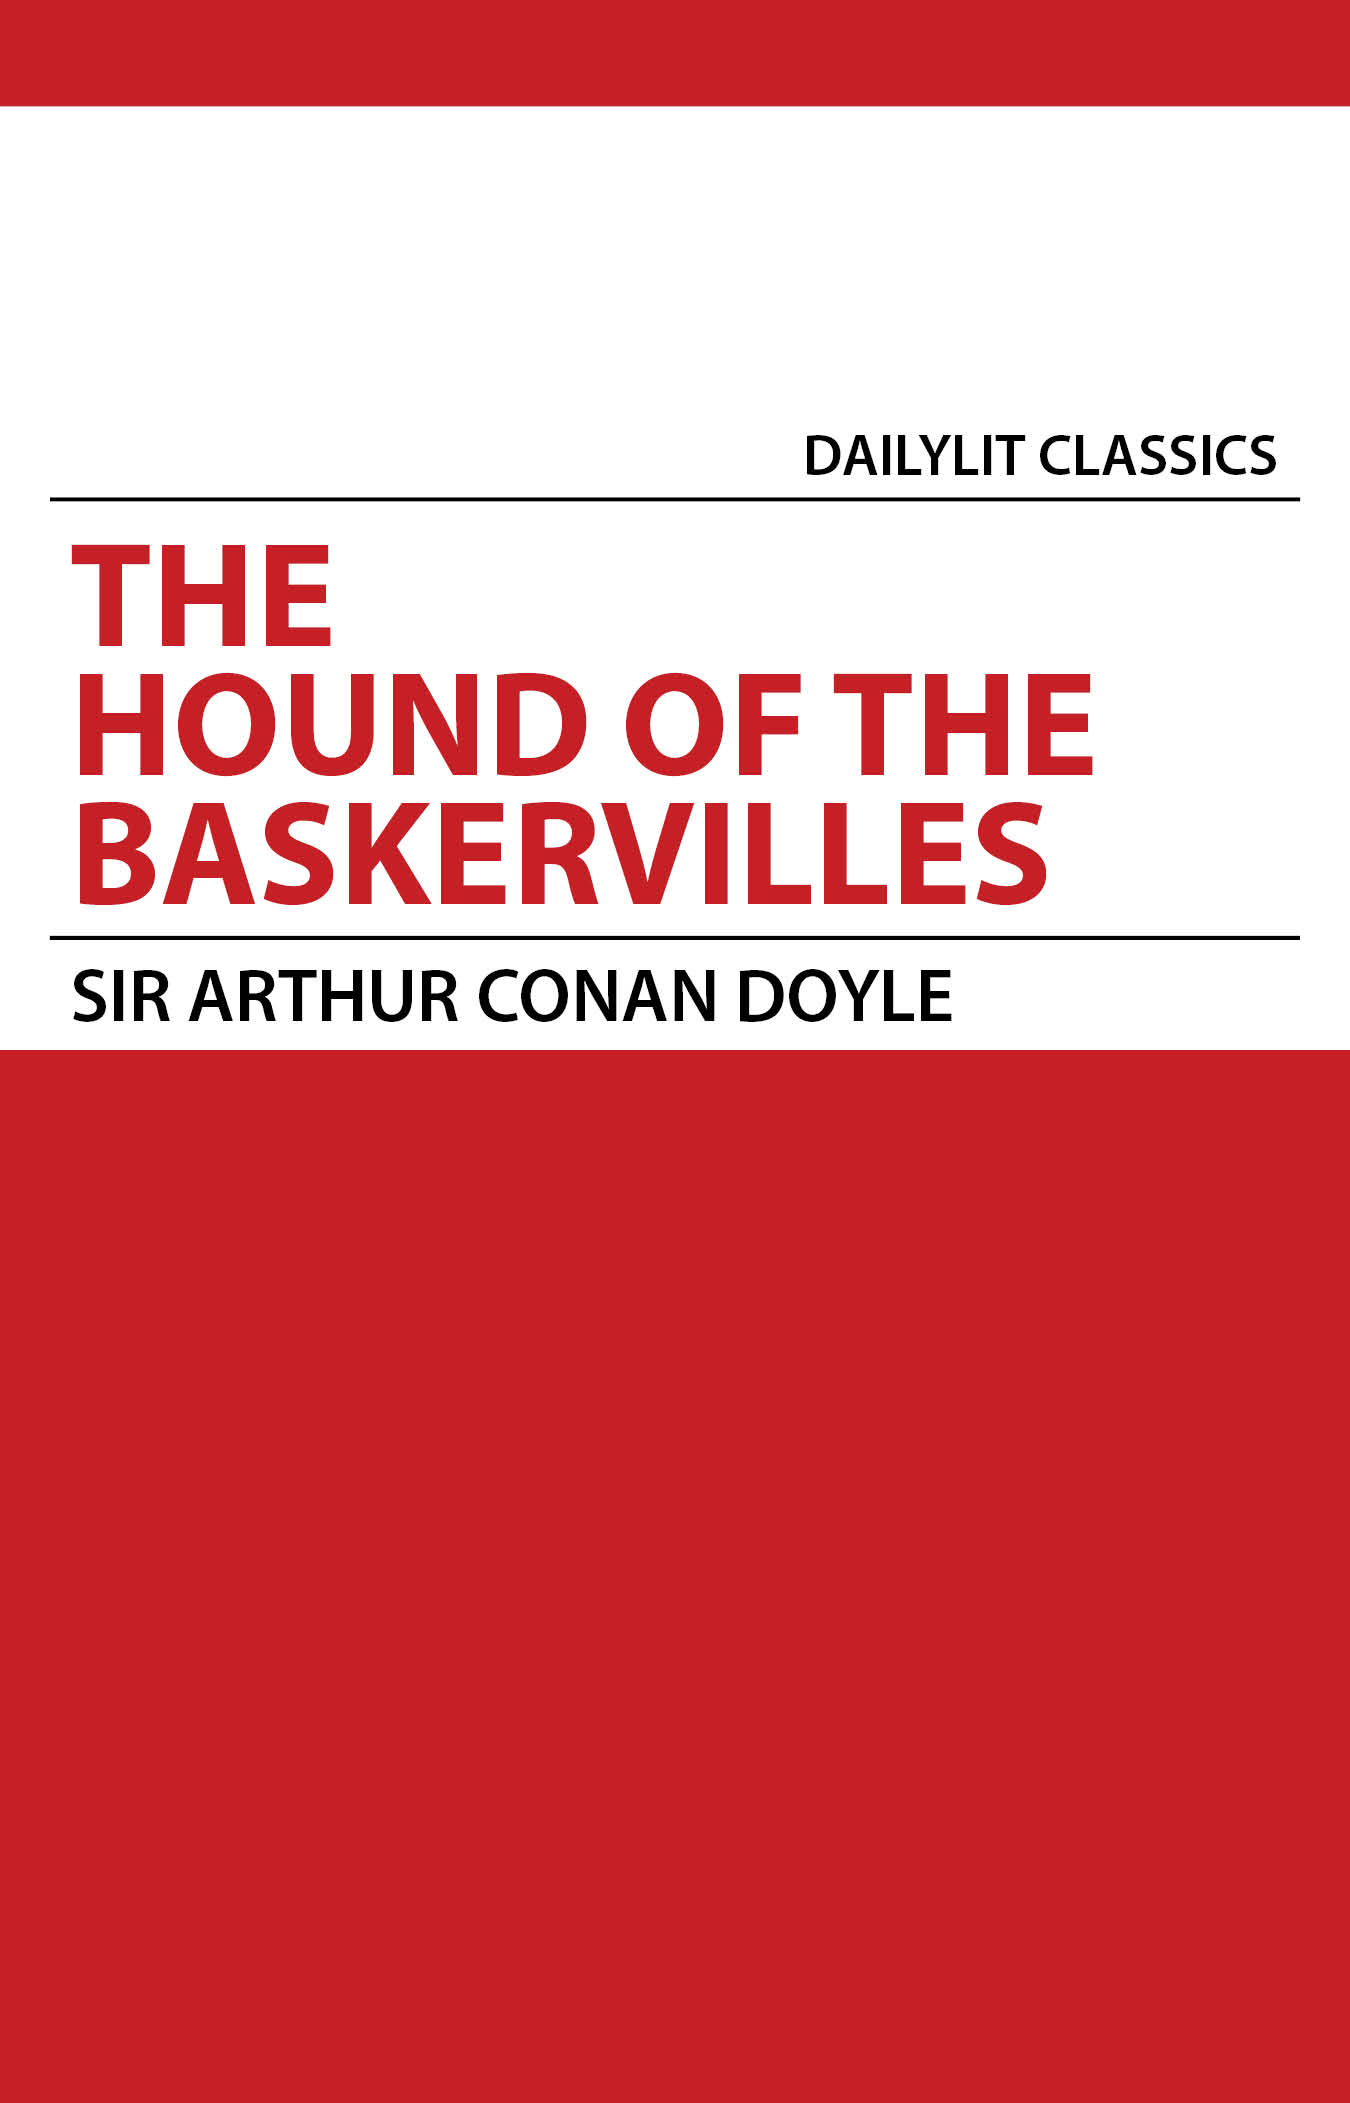 review of the book the hound of the baskervilles